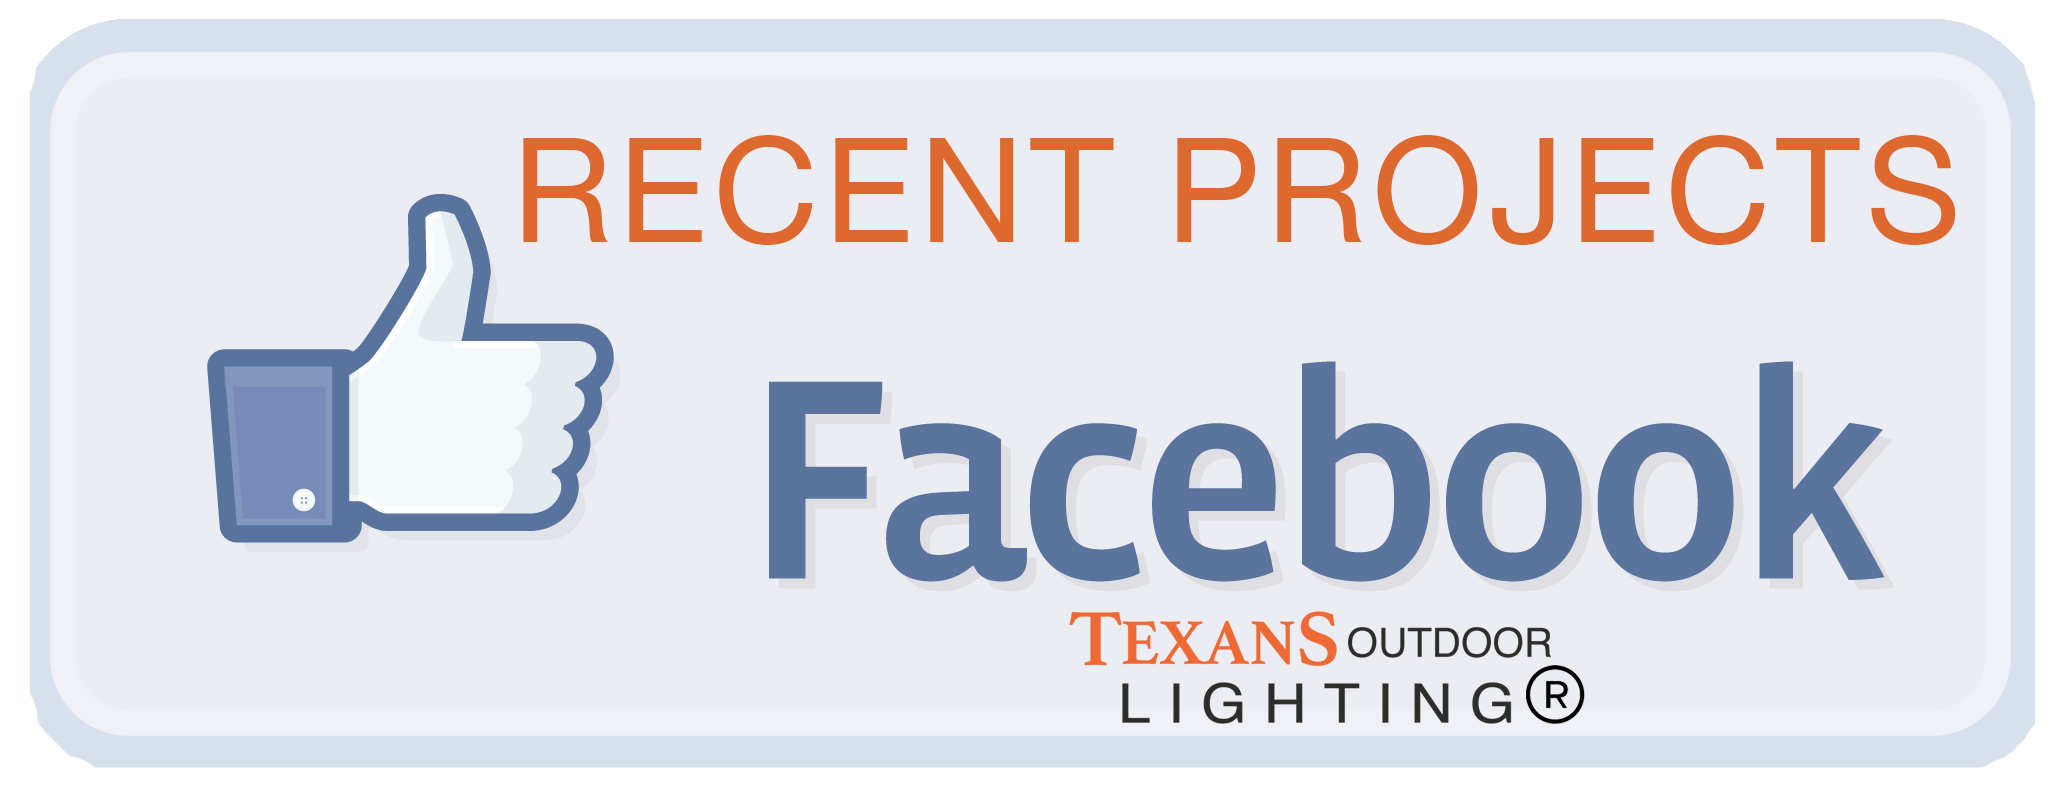 Texans Outdoor Lighting Facebook